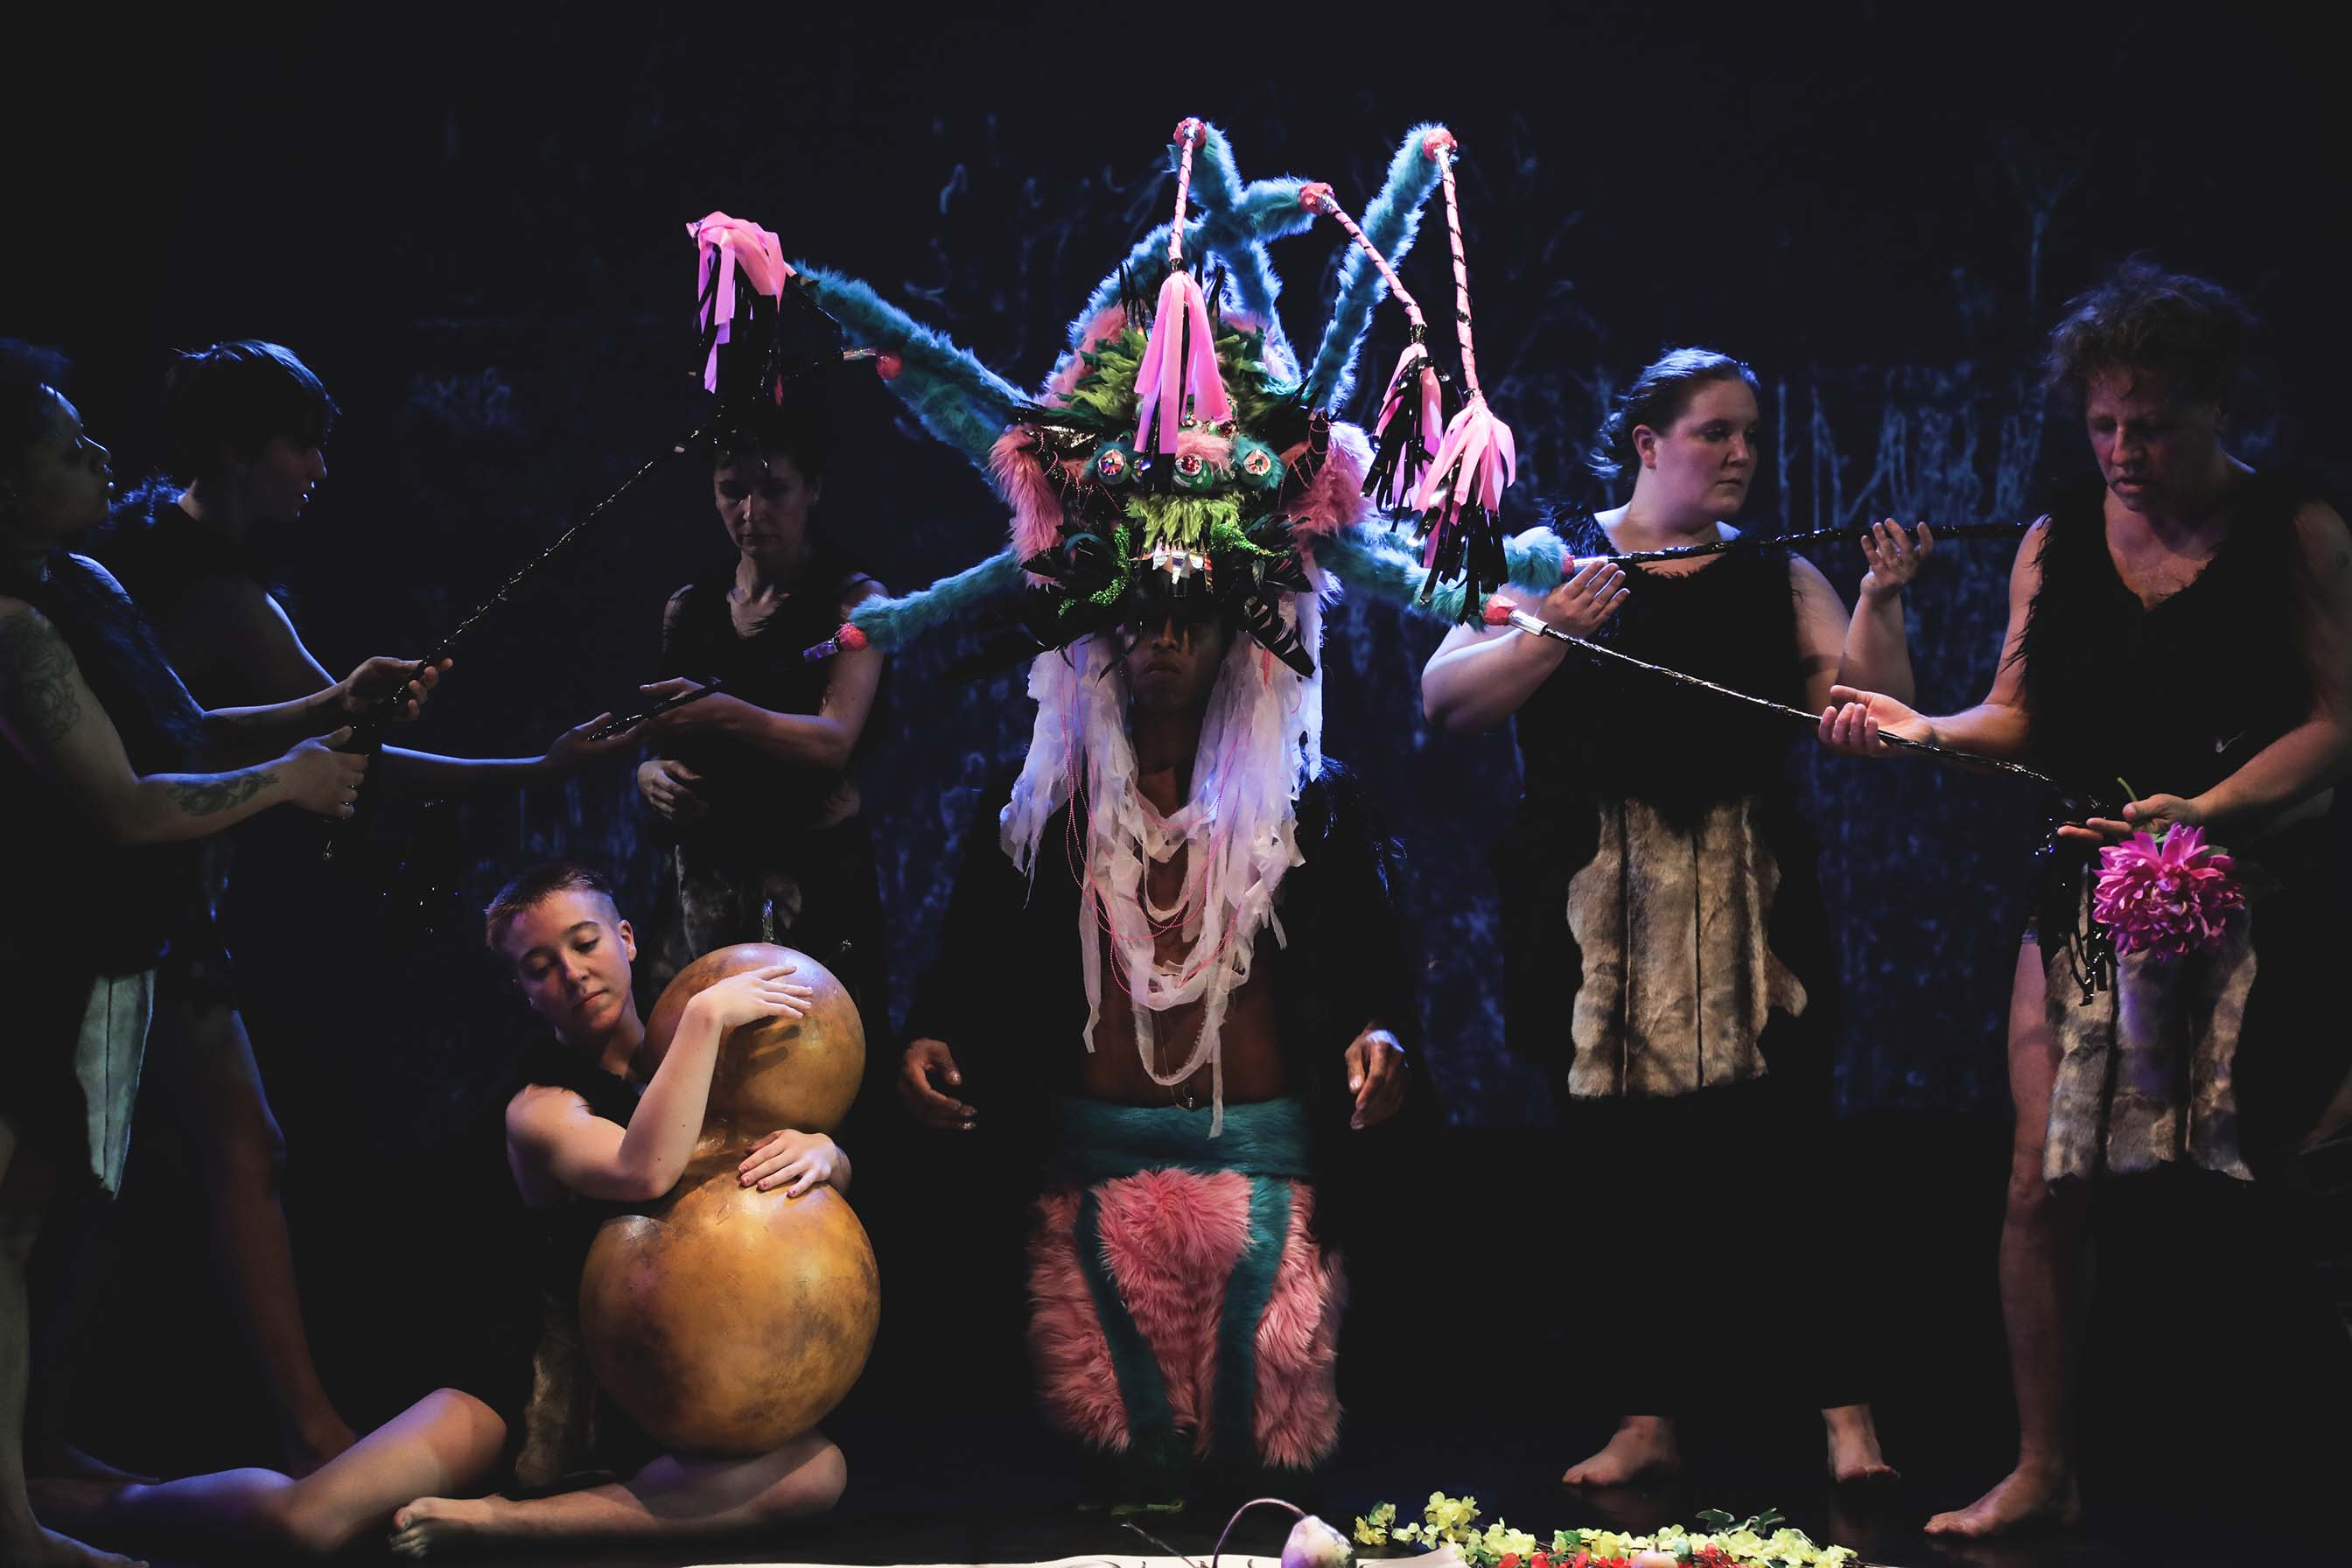 persona wearing a colorful headpiece standing onstage surrounded by other performers